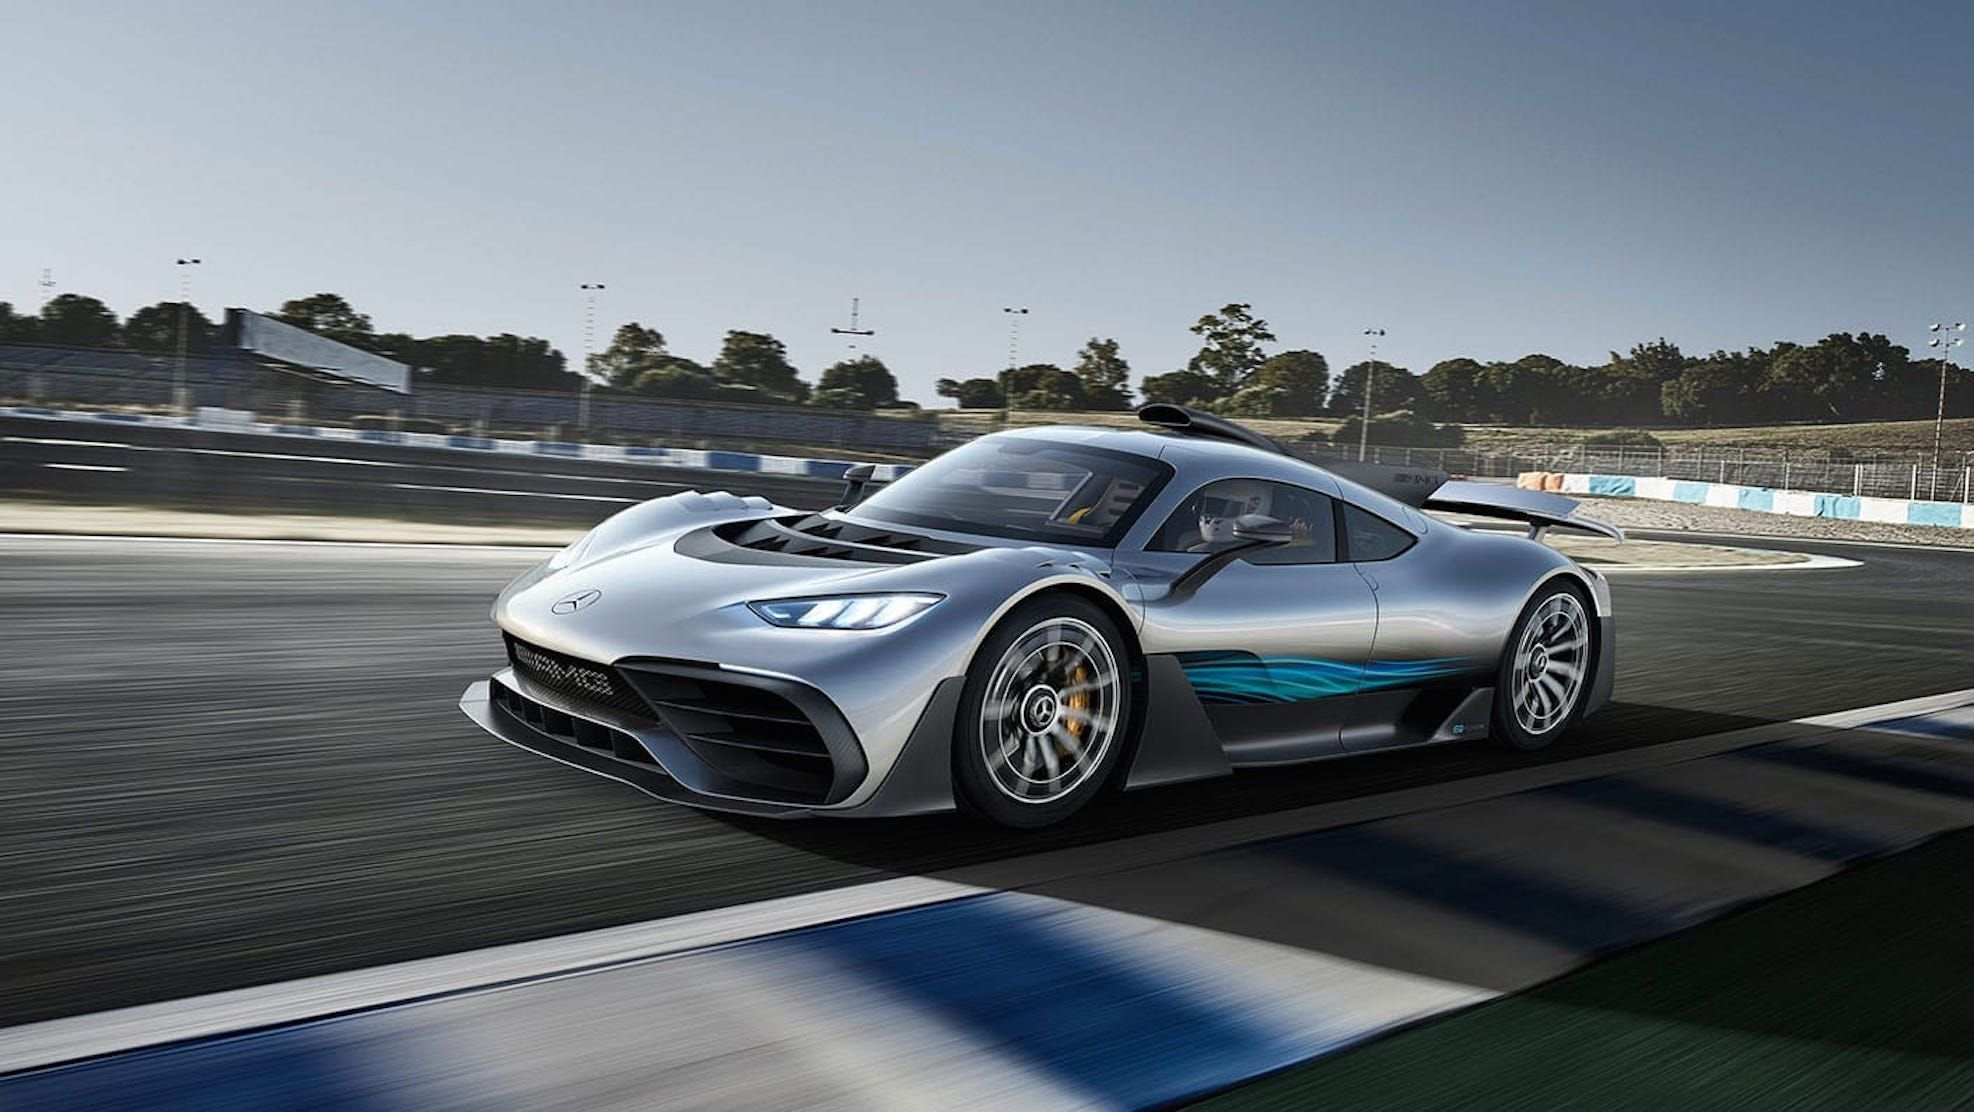 Delayed Mercedes-AMG One Hypercar Will Arrive in 2021